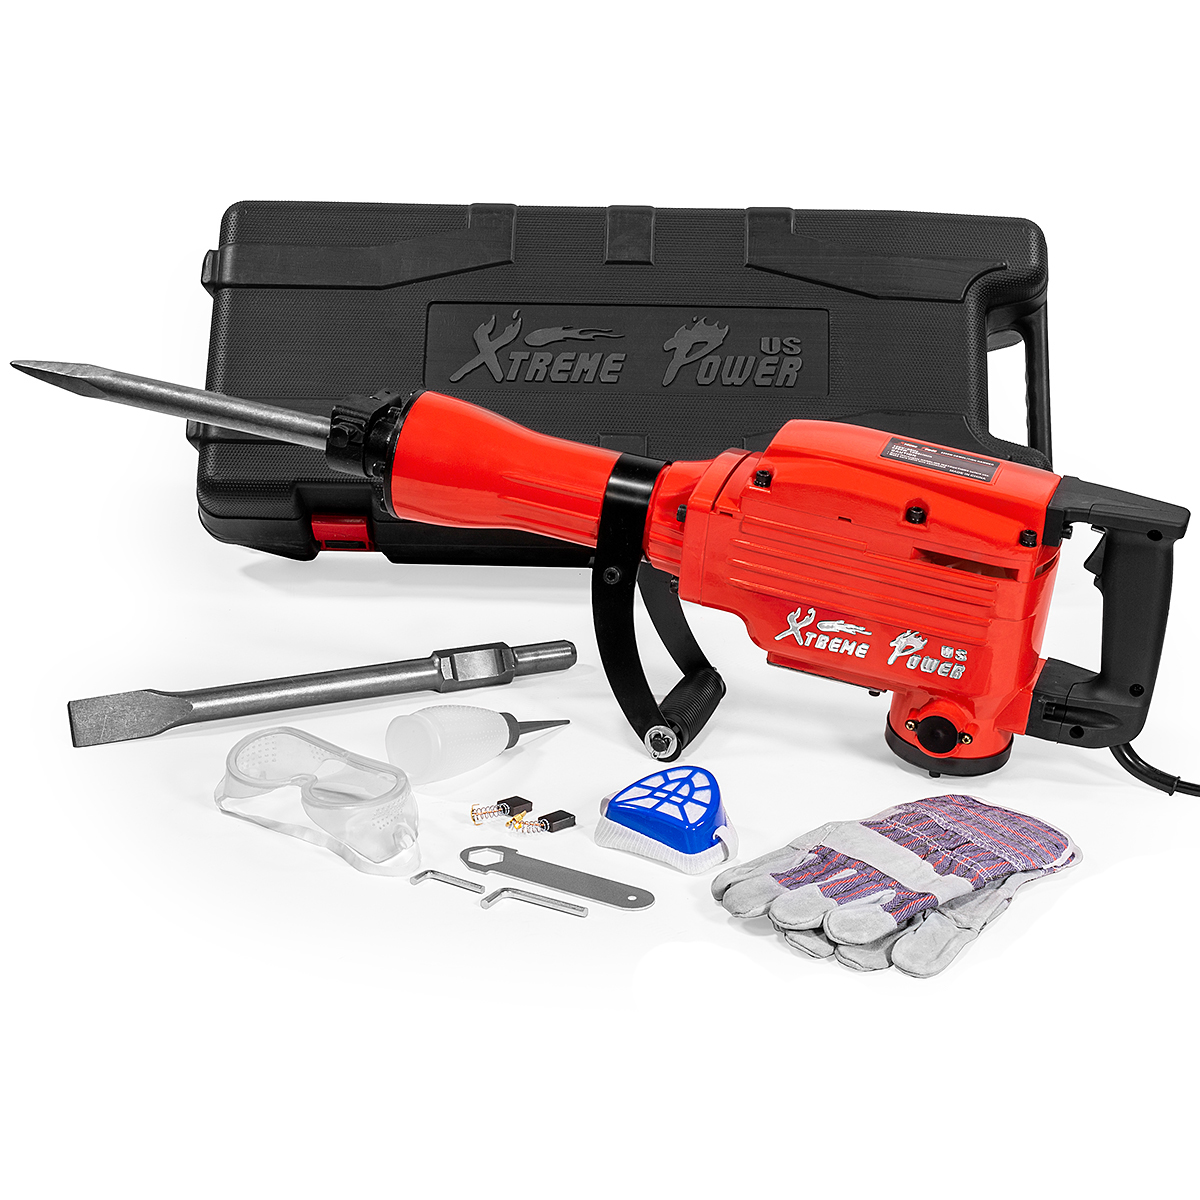 XtremepowerUS 2200W Electric Jack Hammer Concrete Demolition (2) Chisel Point Flat Bit with Carrying Case